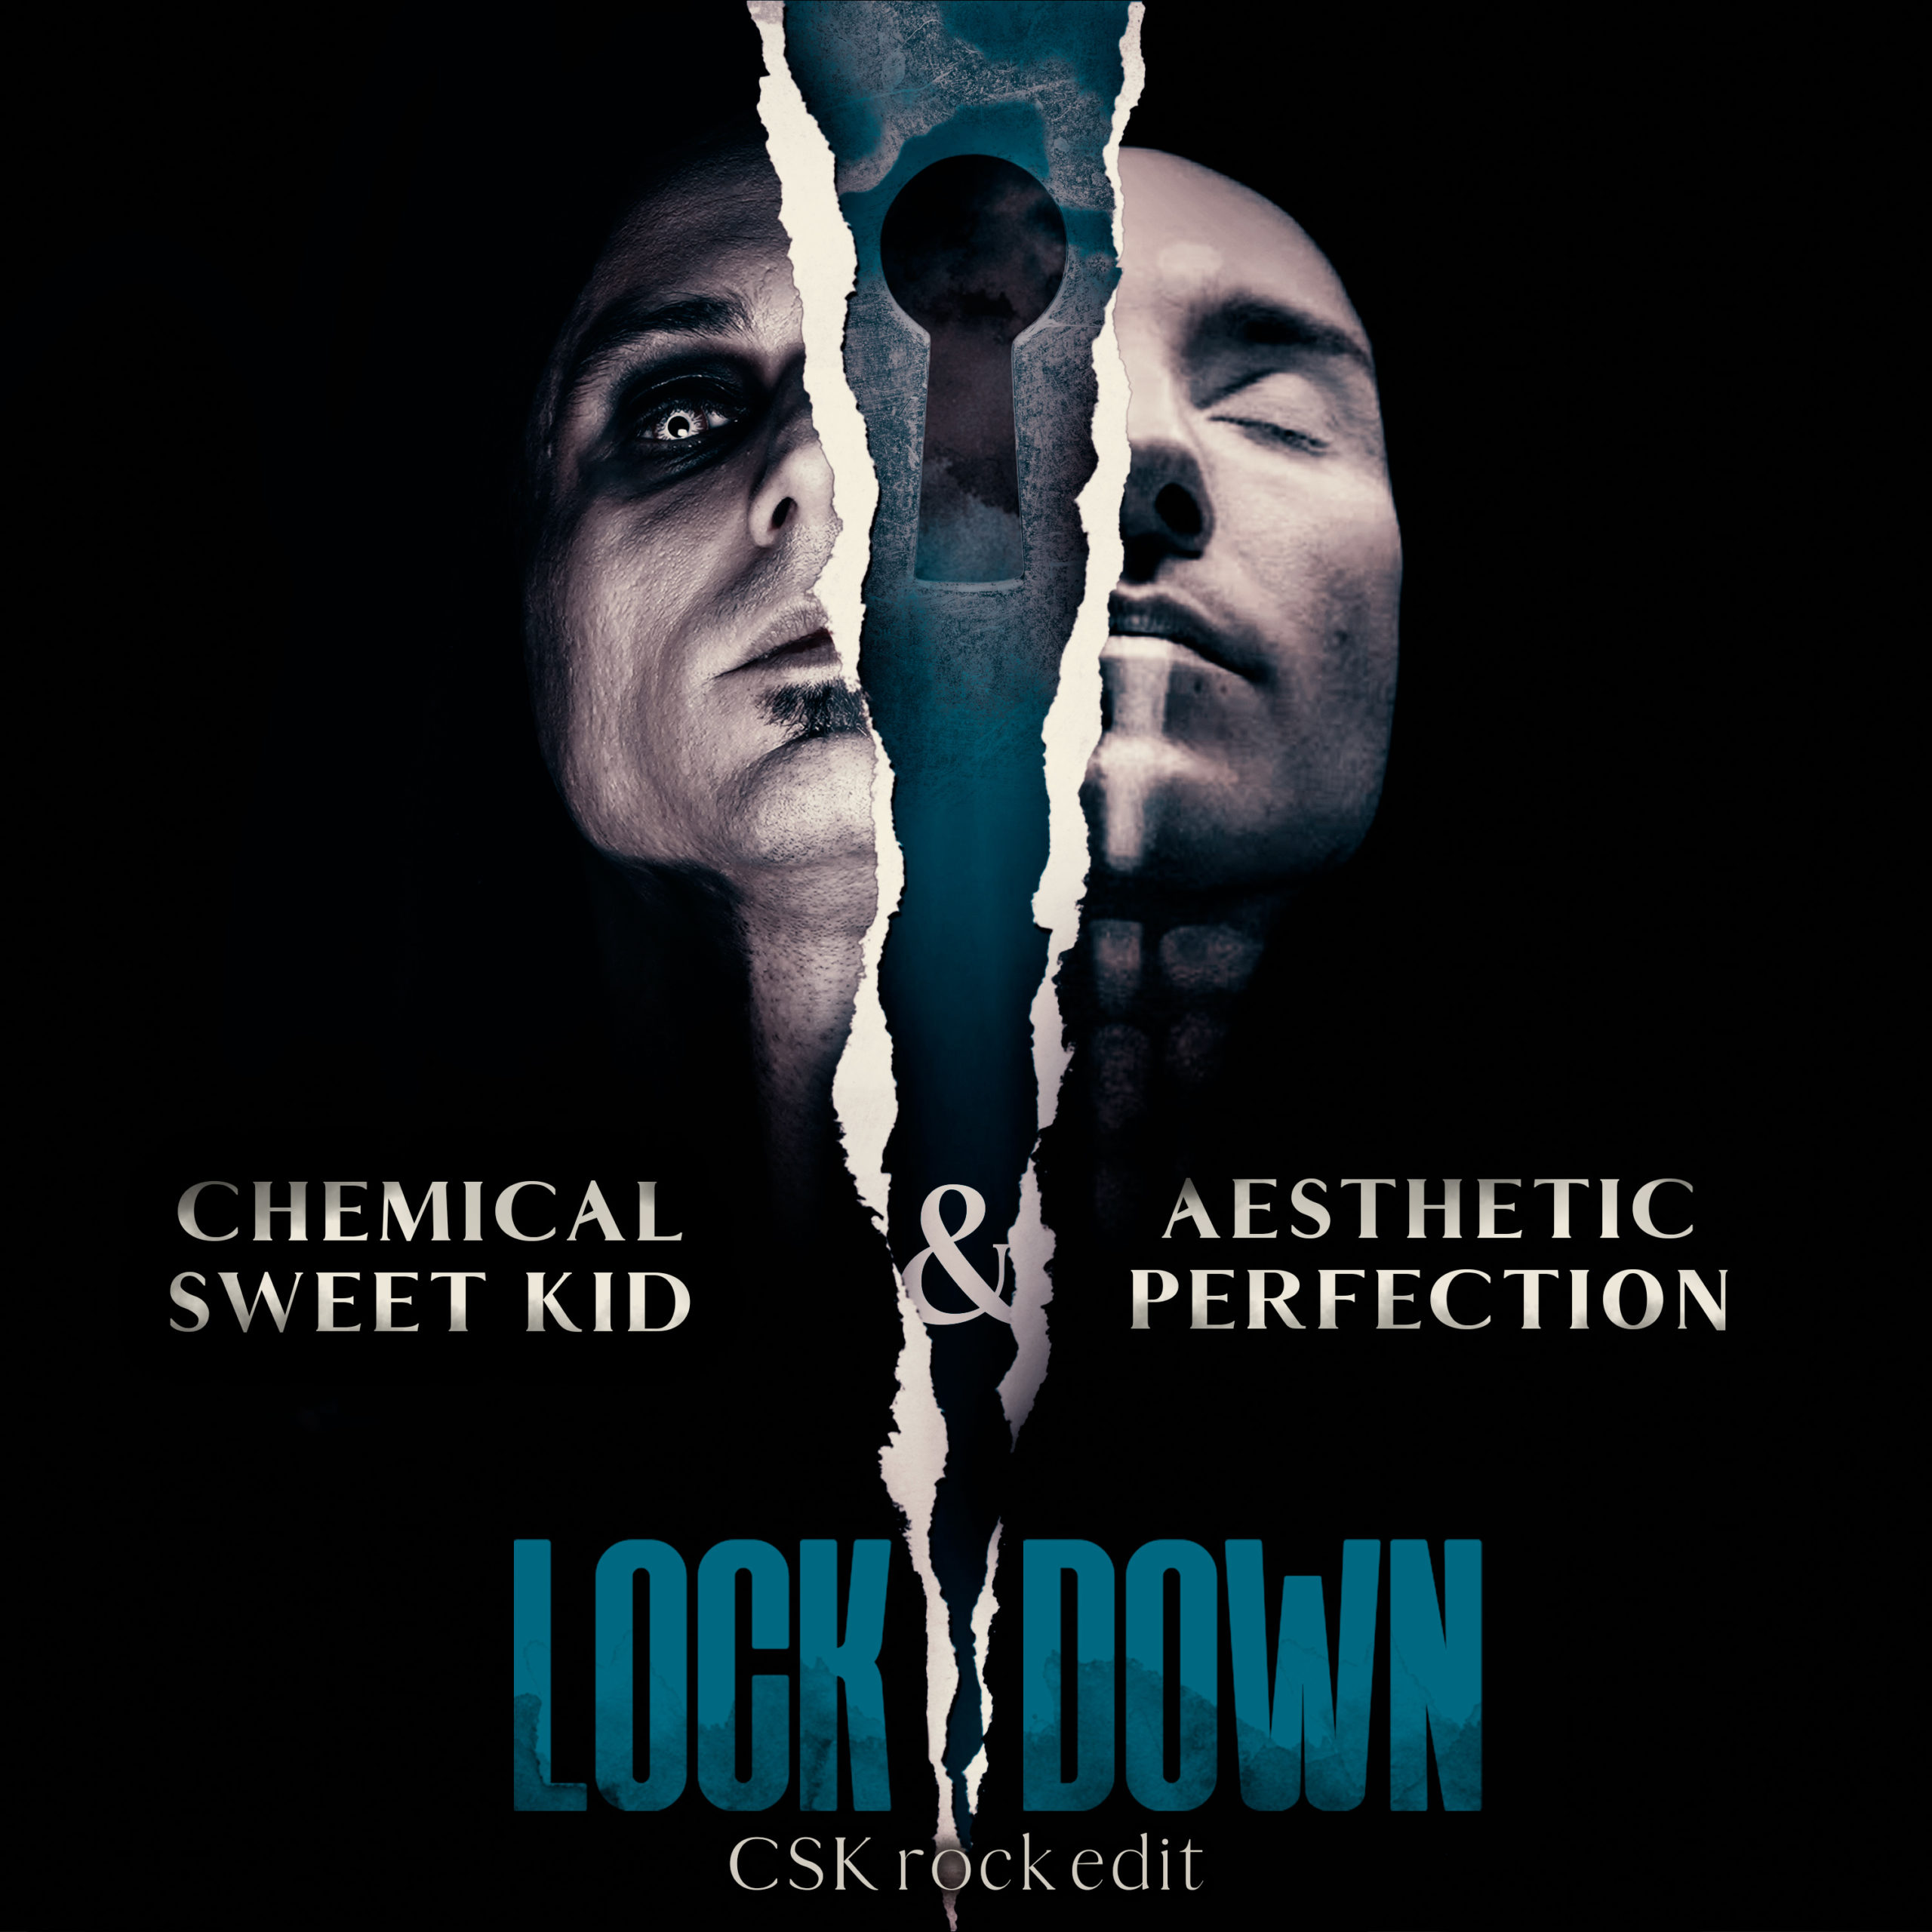 Artwork-Lockdown Rock Edit